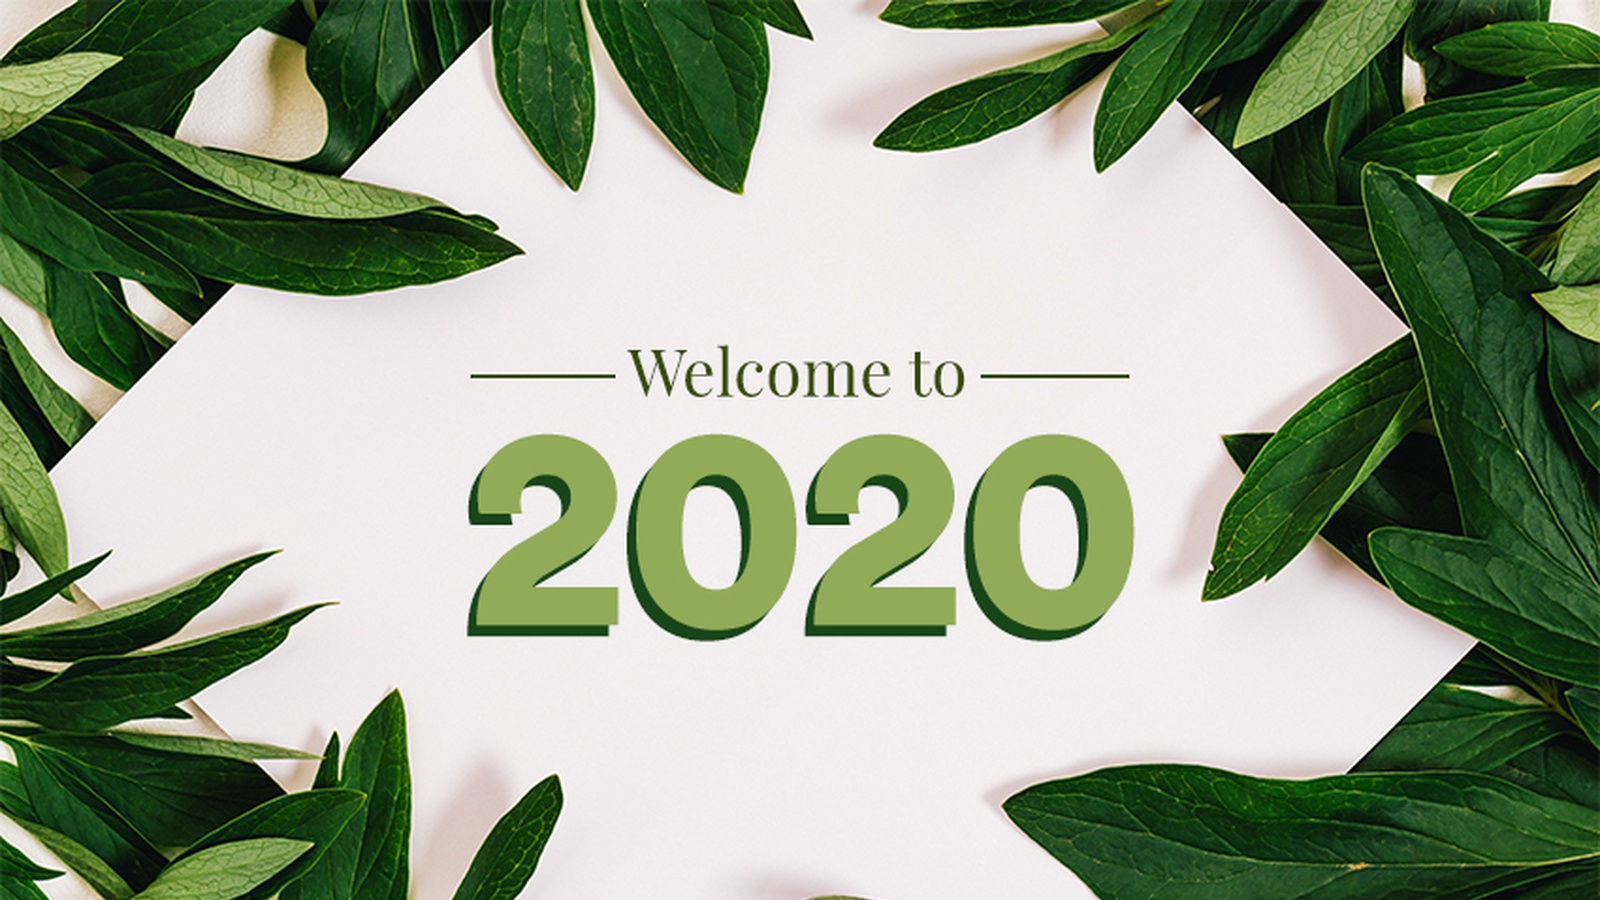 Let's Do This! (2020 Welcome Video from James)